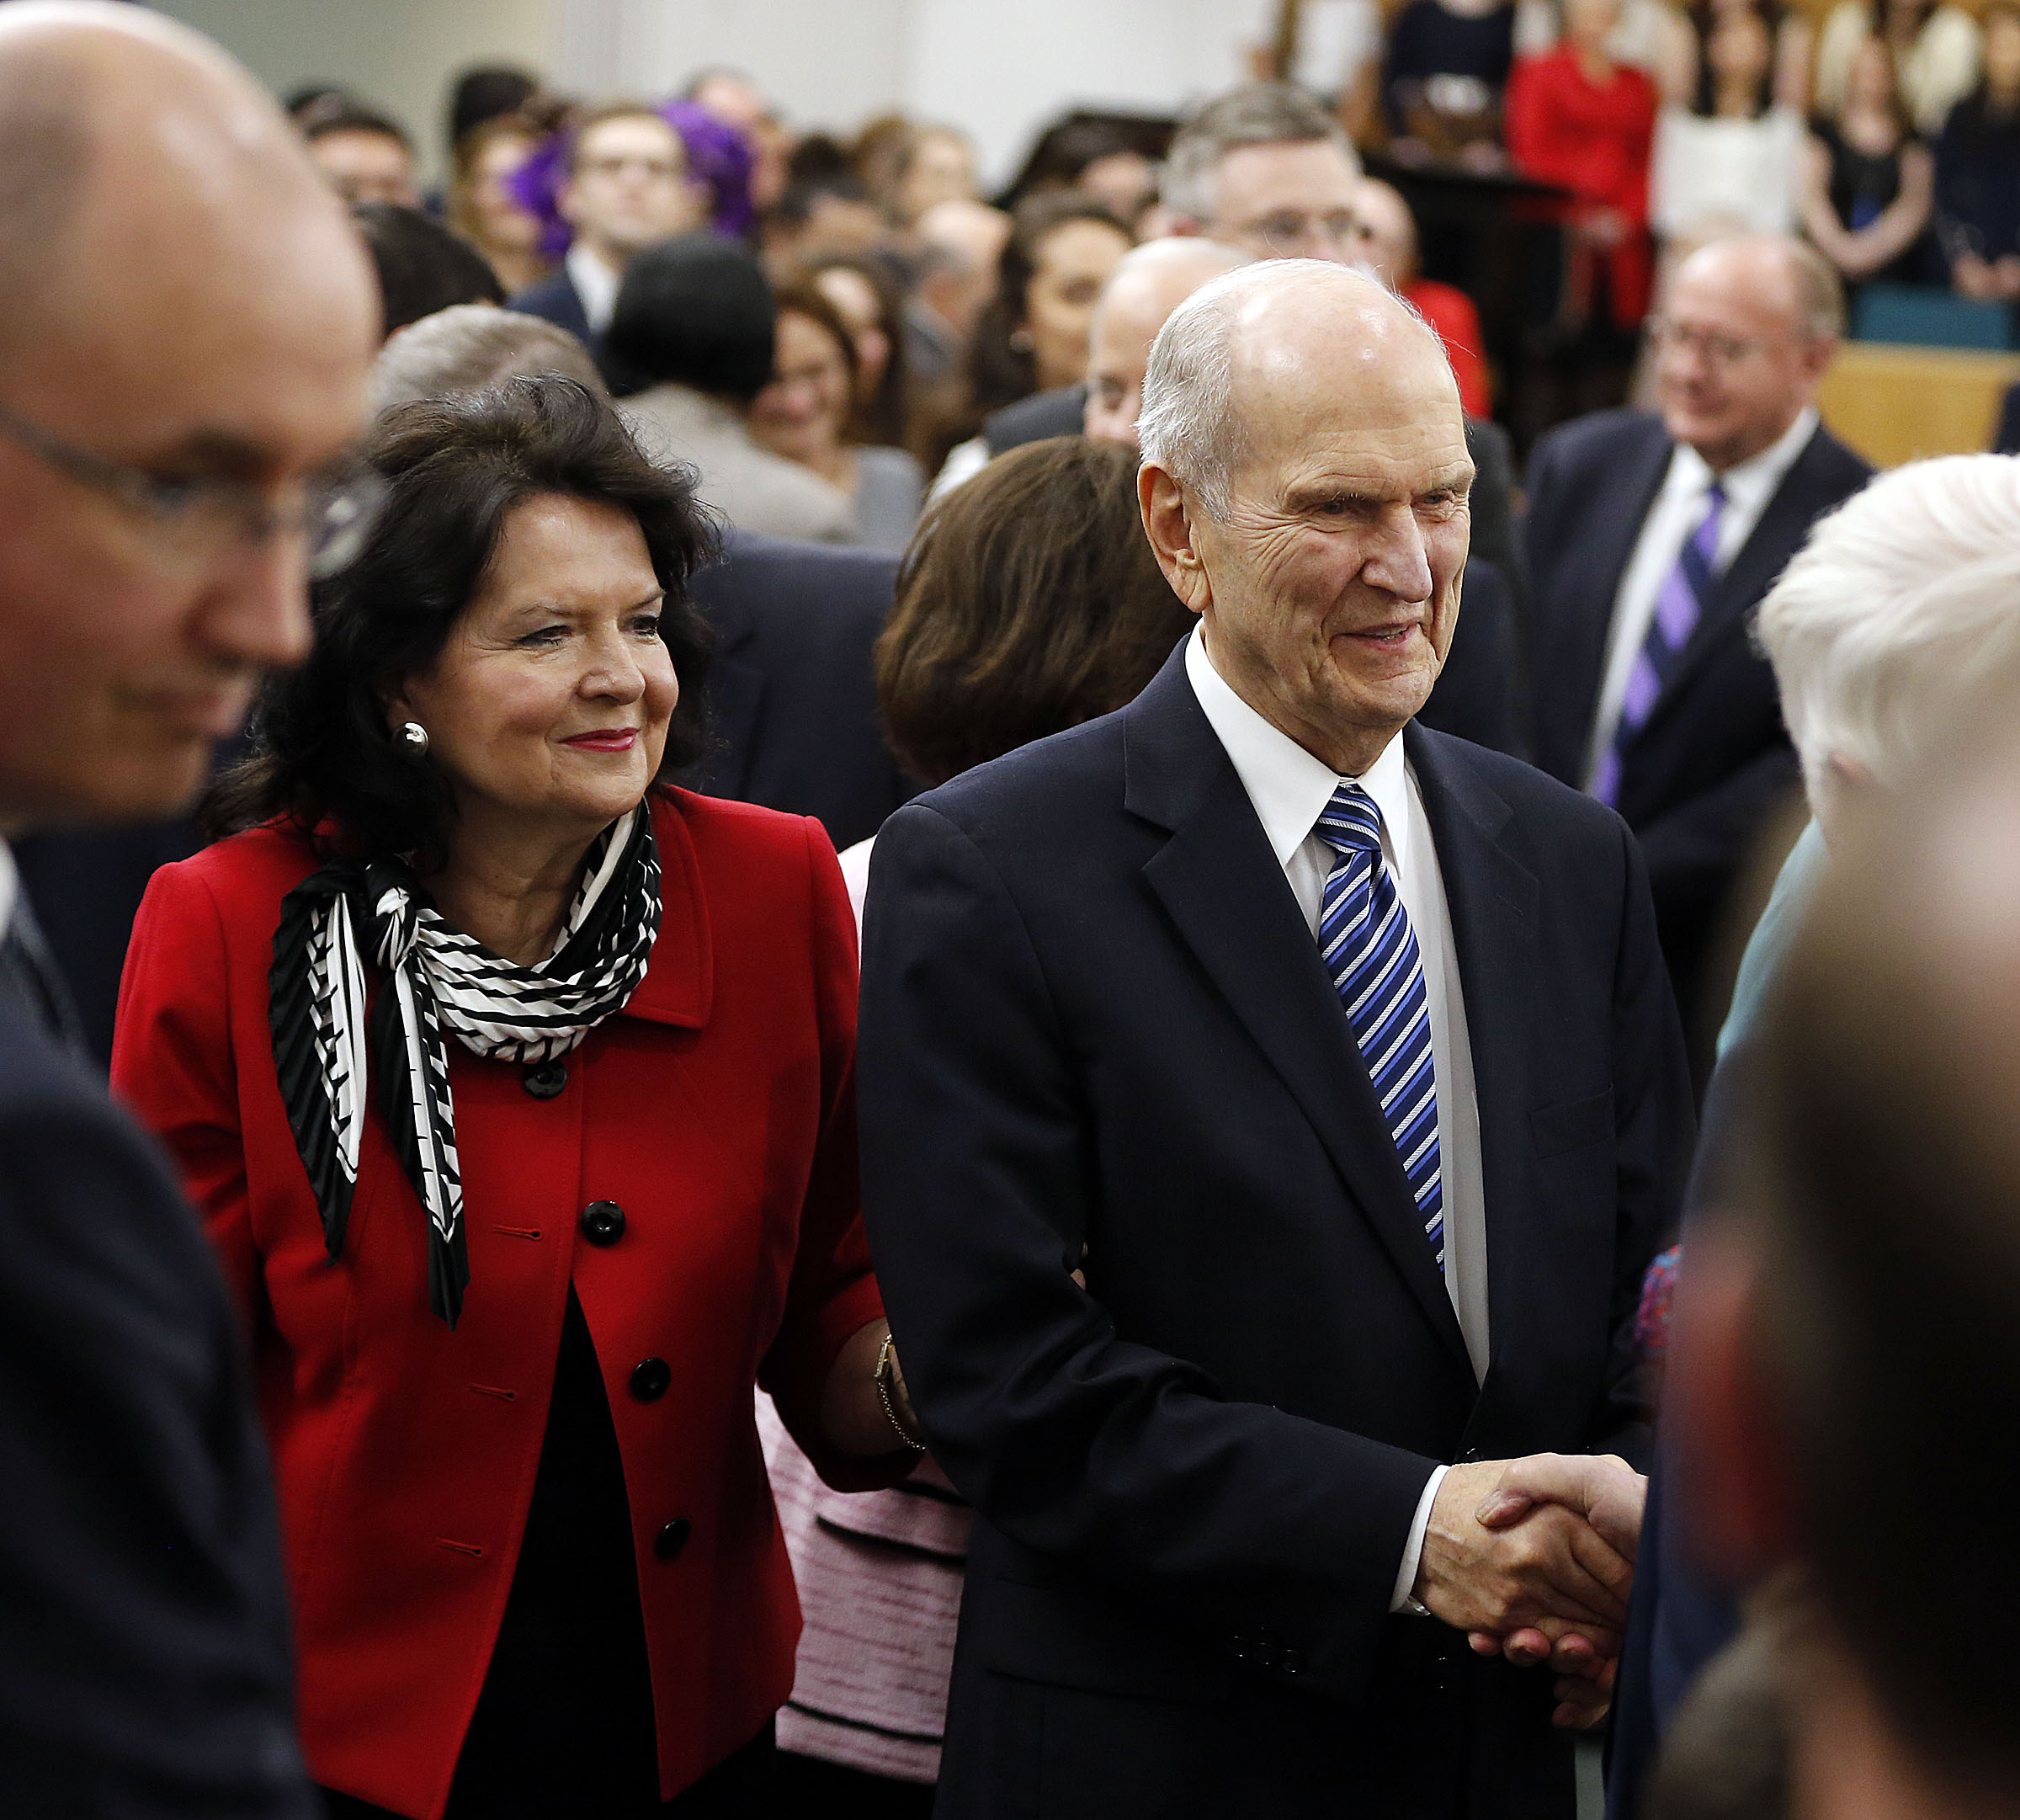 President Russell M. Nelson and Sister Wendy Nelson greet those in attendance following a meeting at the Hyde Park Chapel in London on Thursday, April 12, 2018.